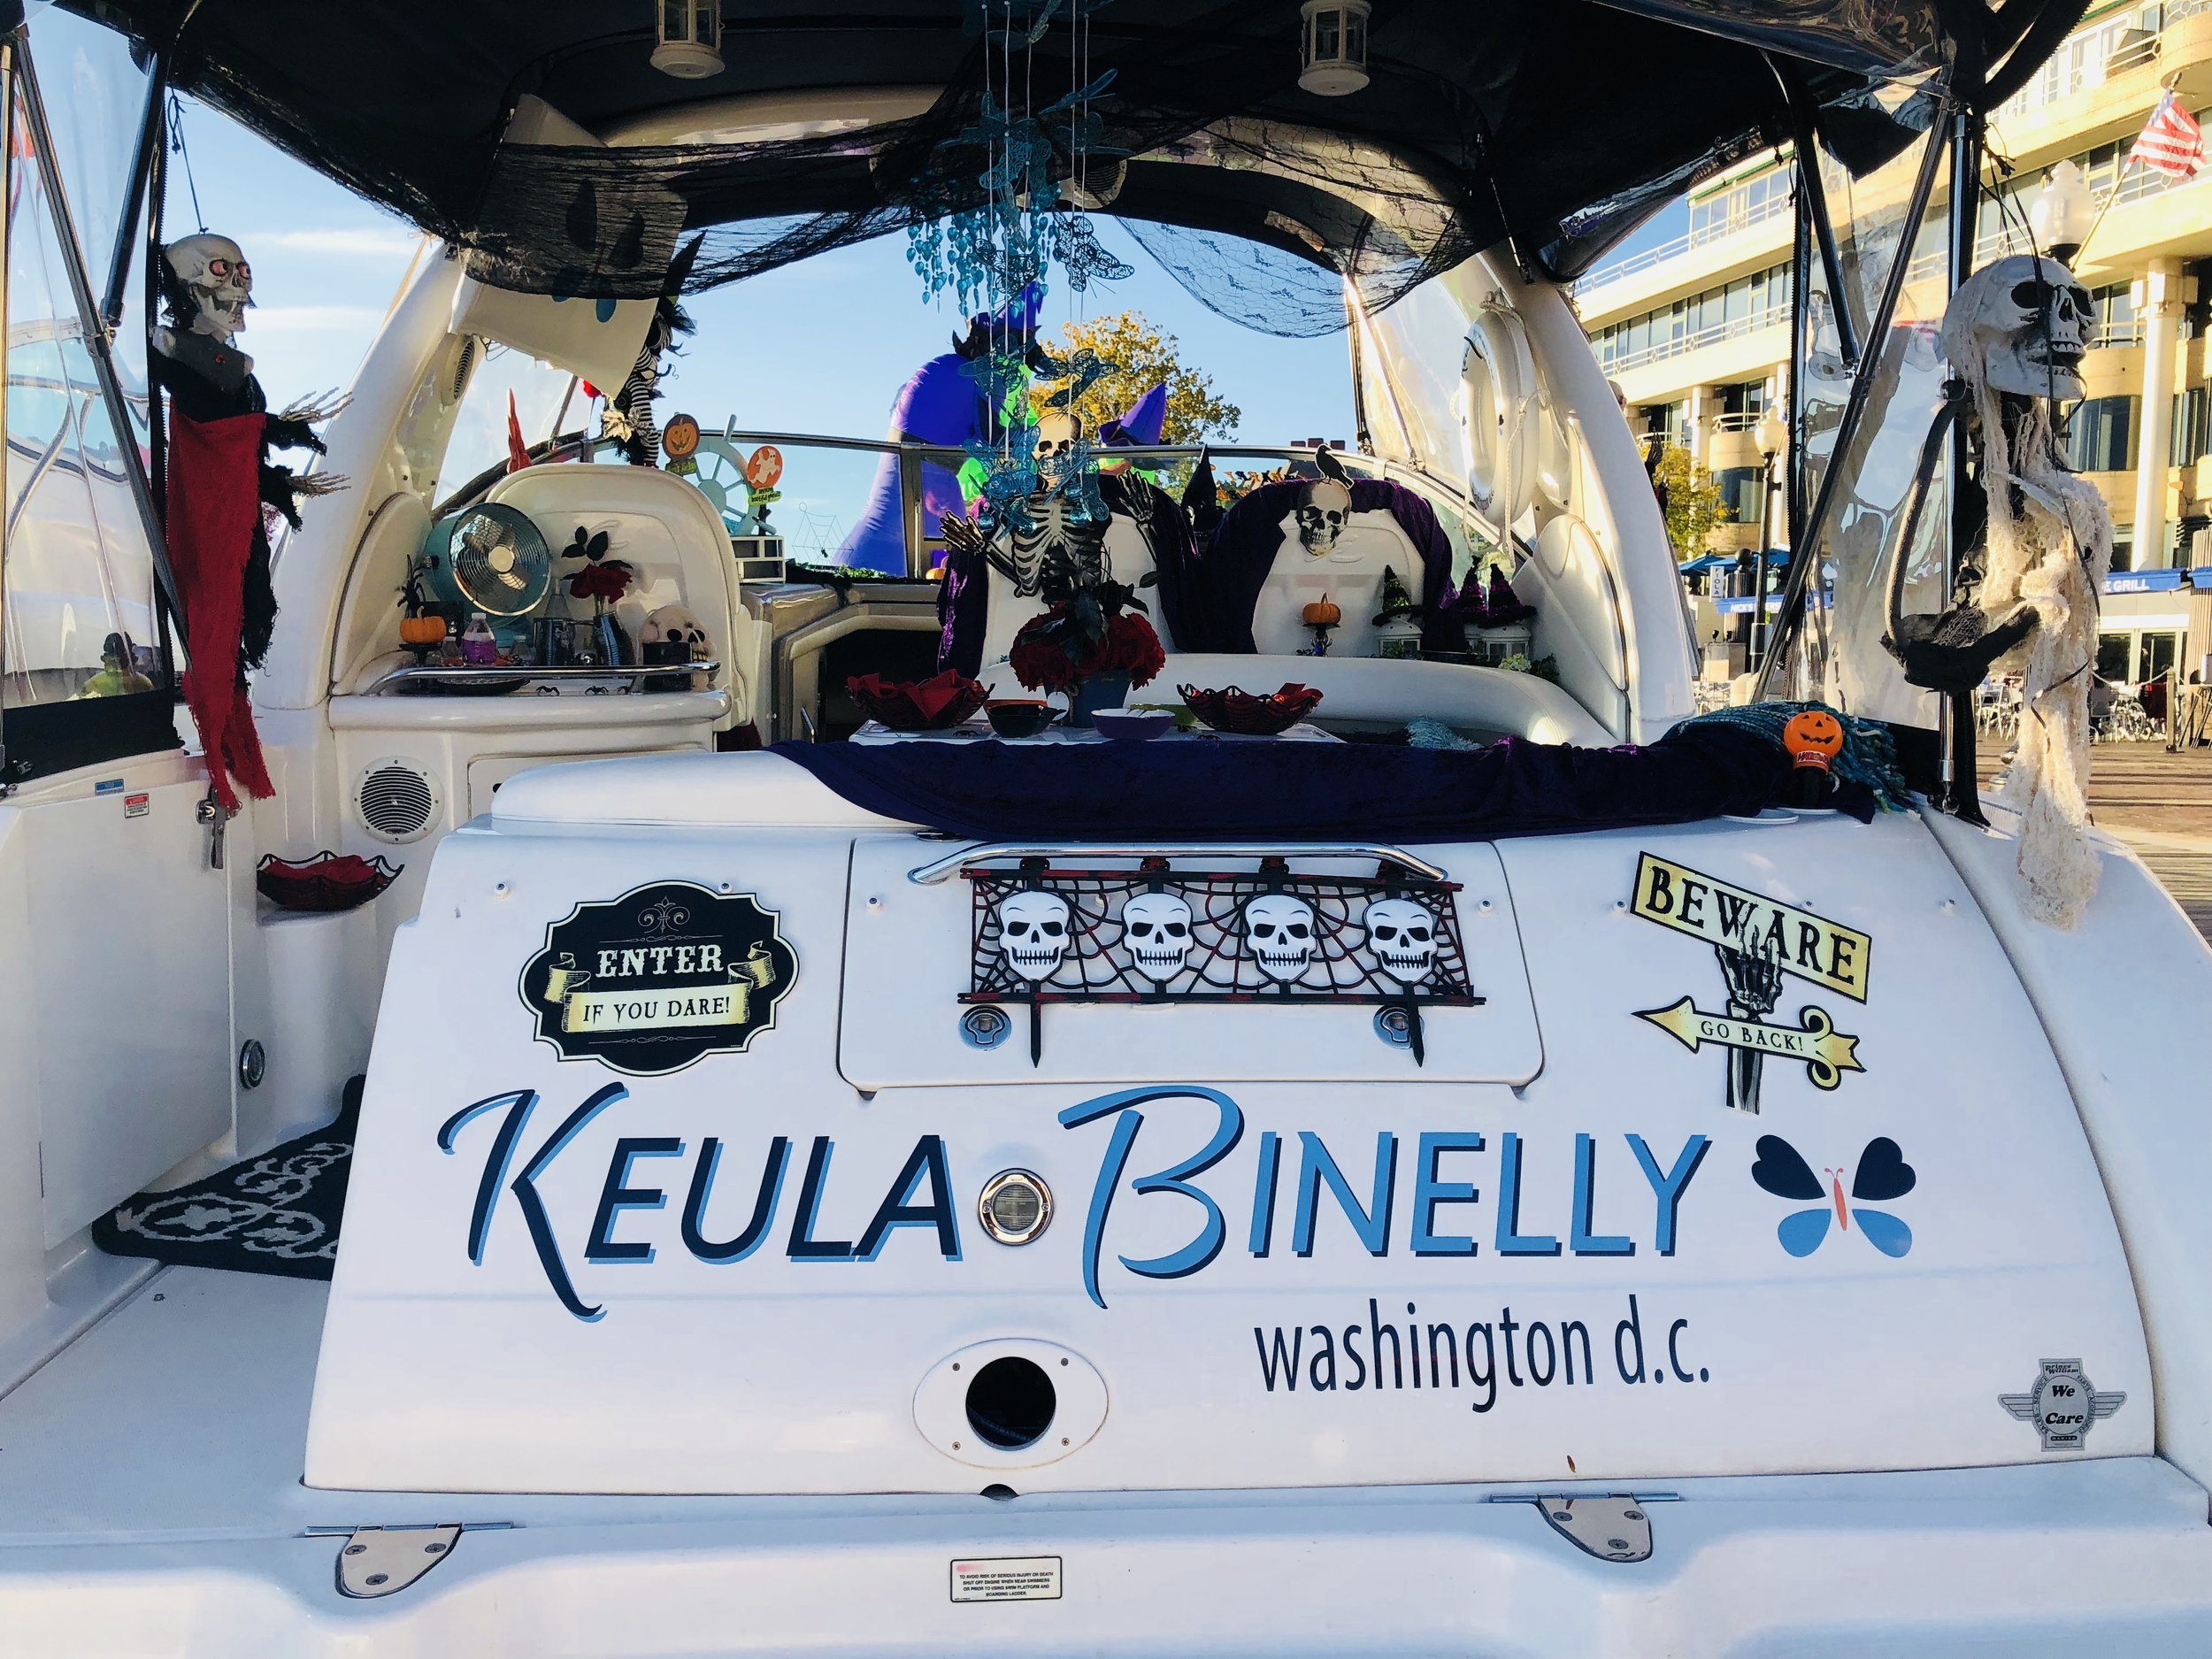 Savvy_Sexy_socia_womens_Networking_club_Keula_Binelly_Boating_life_washington-dc_Halloween_Georgetown_waterfront_Boating_life